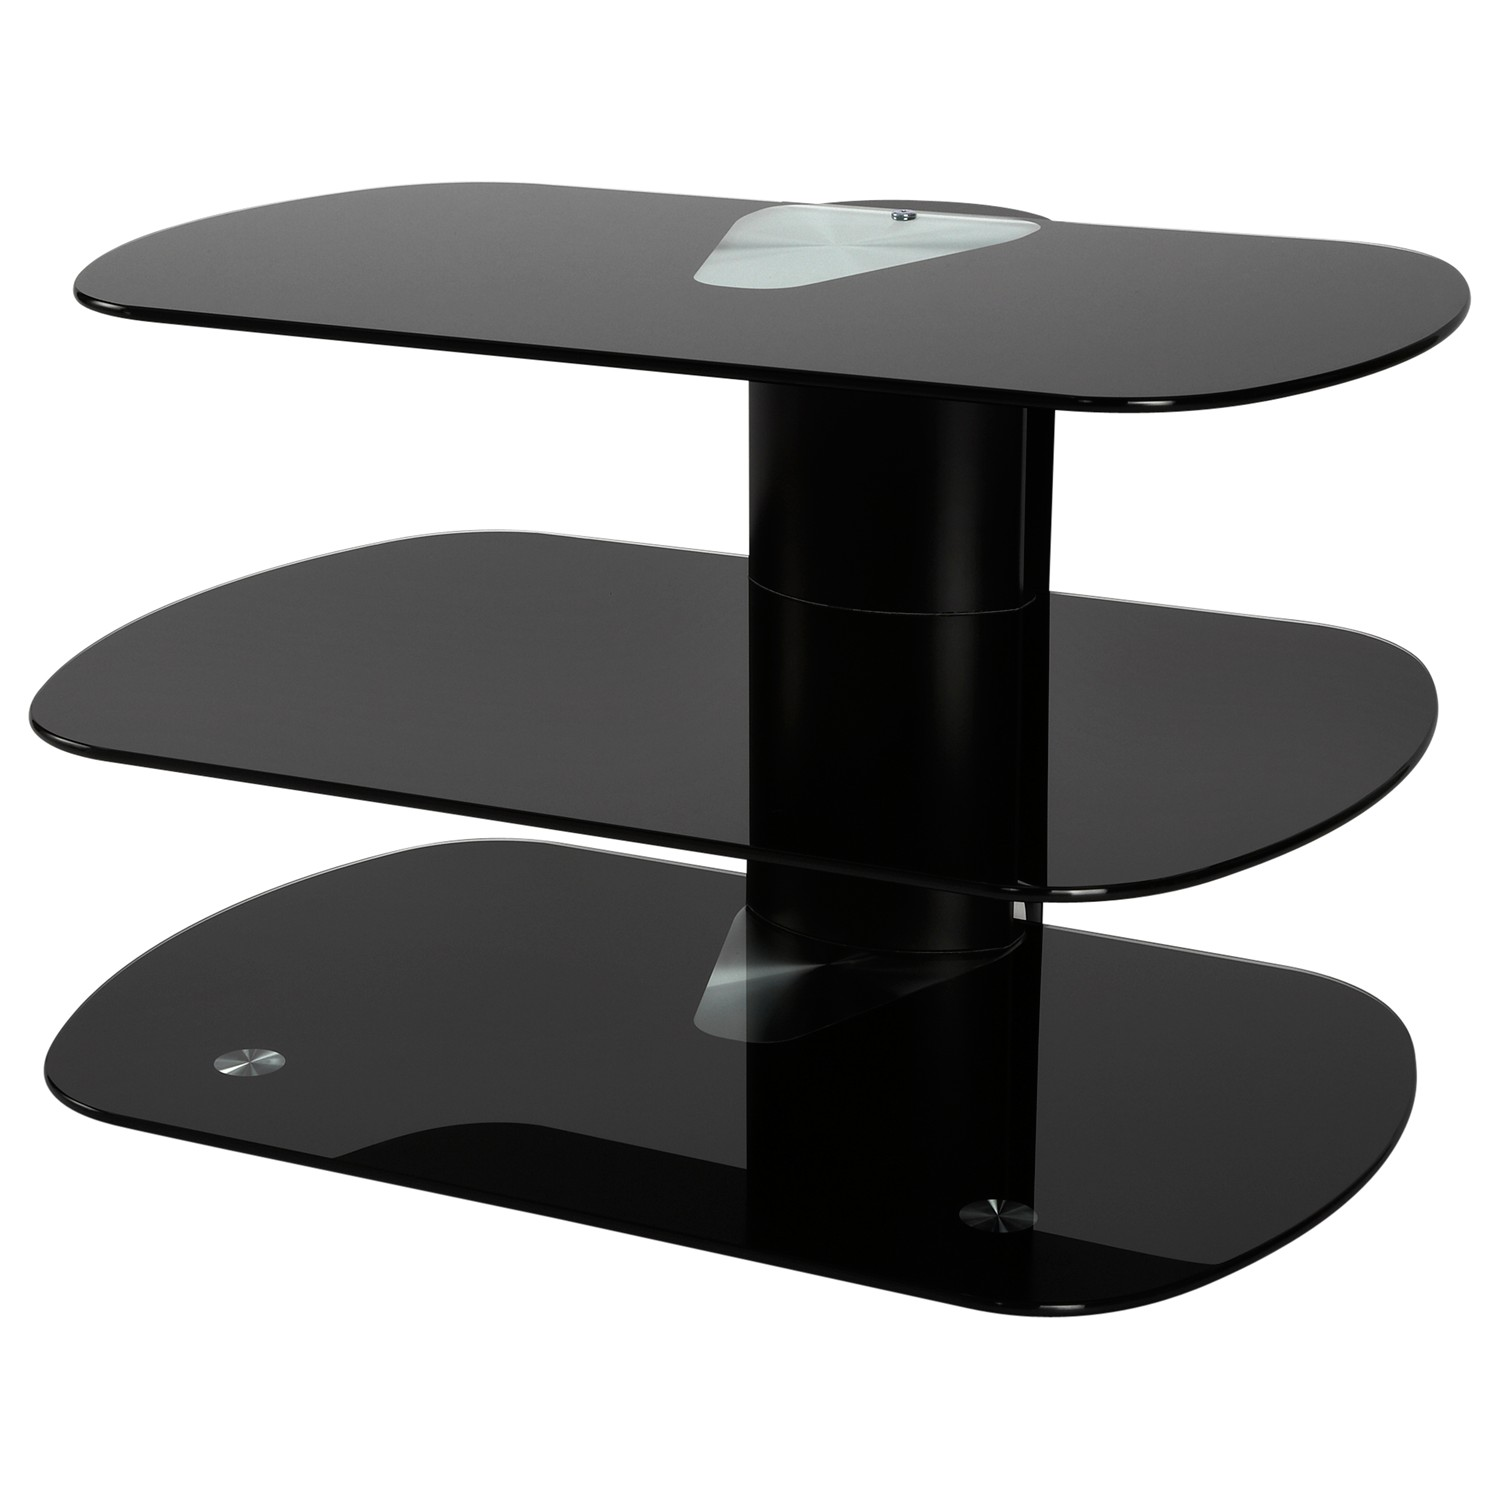 "Off the Wall Sky 750 TV Stand for TVs up to 55"" Black"